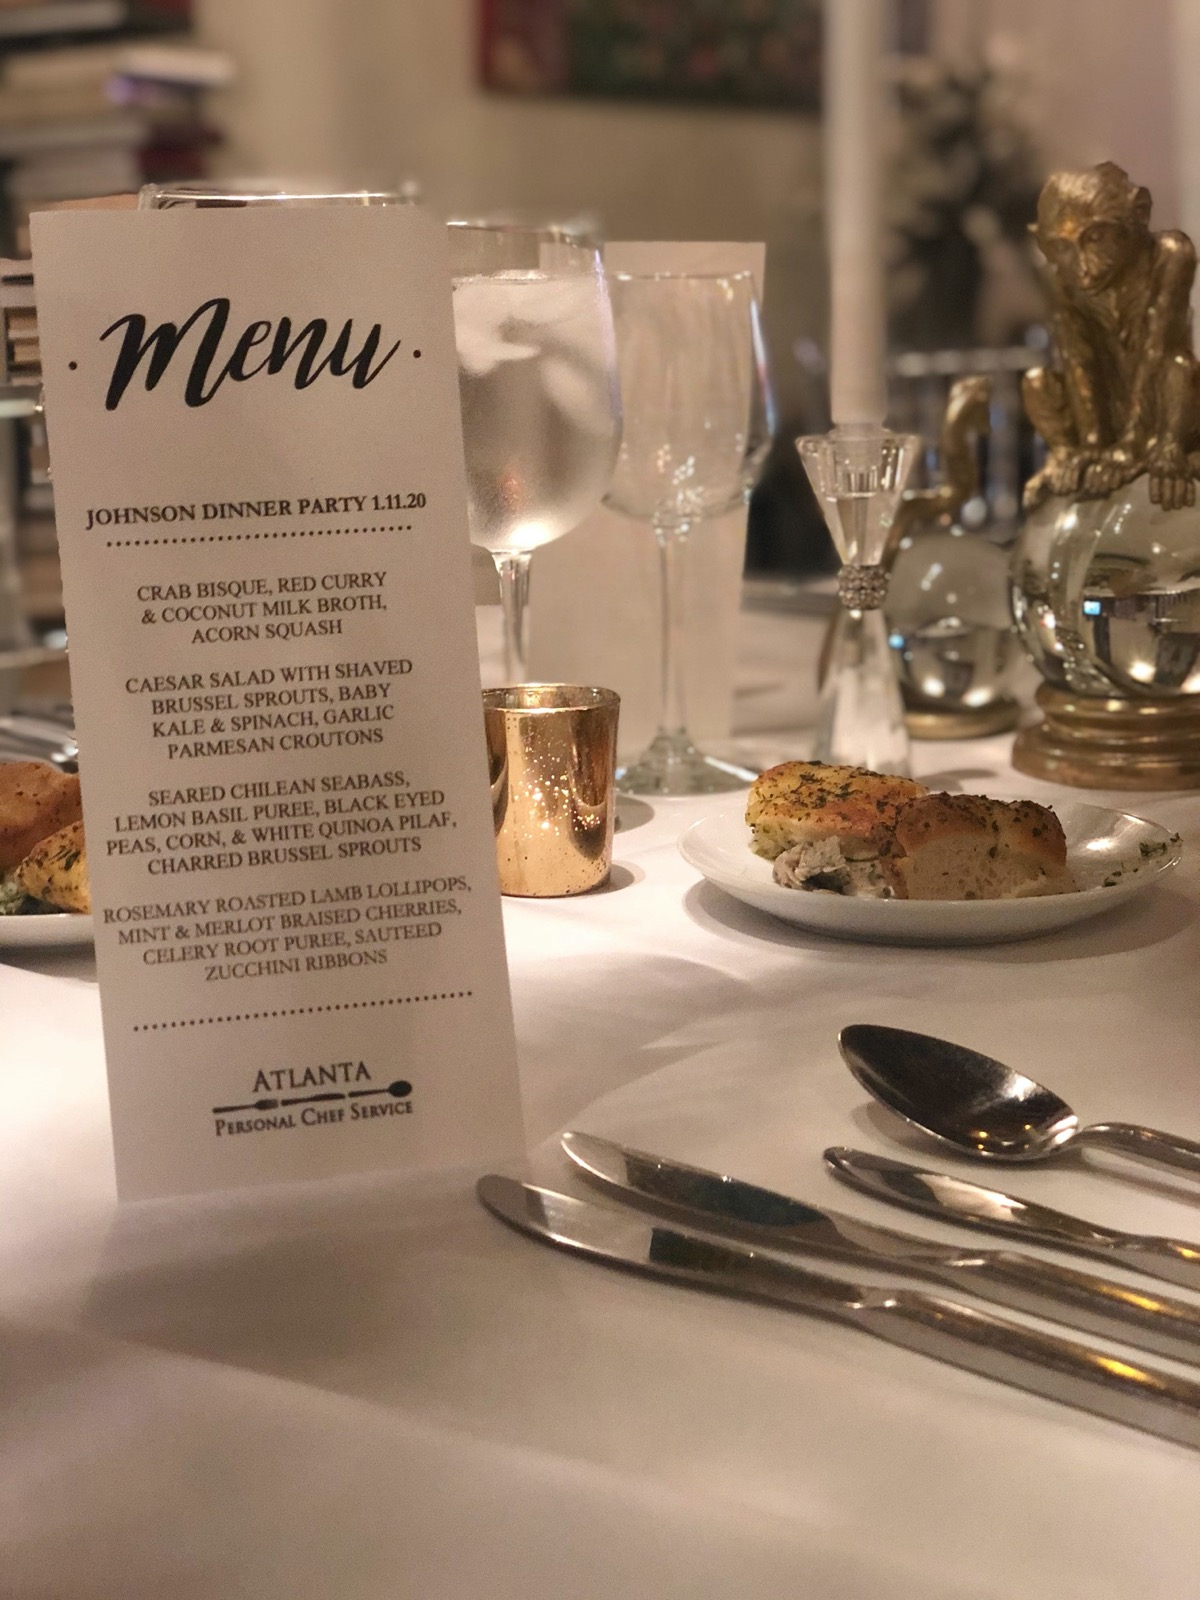 Custom printed dinner menus with fresh bread and butter service